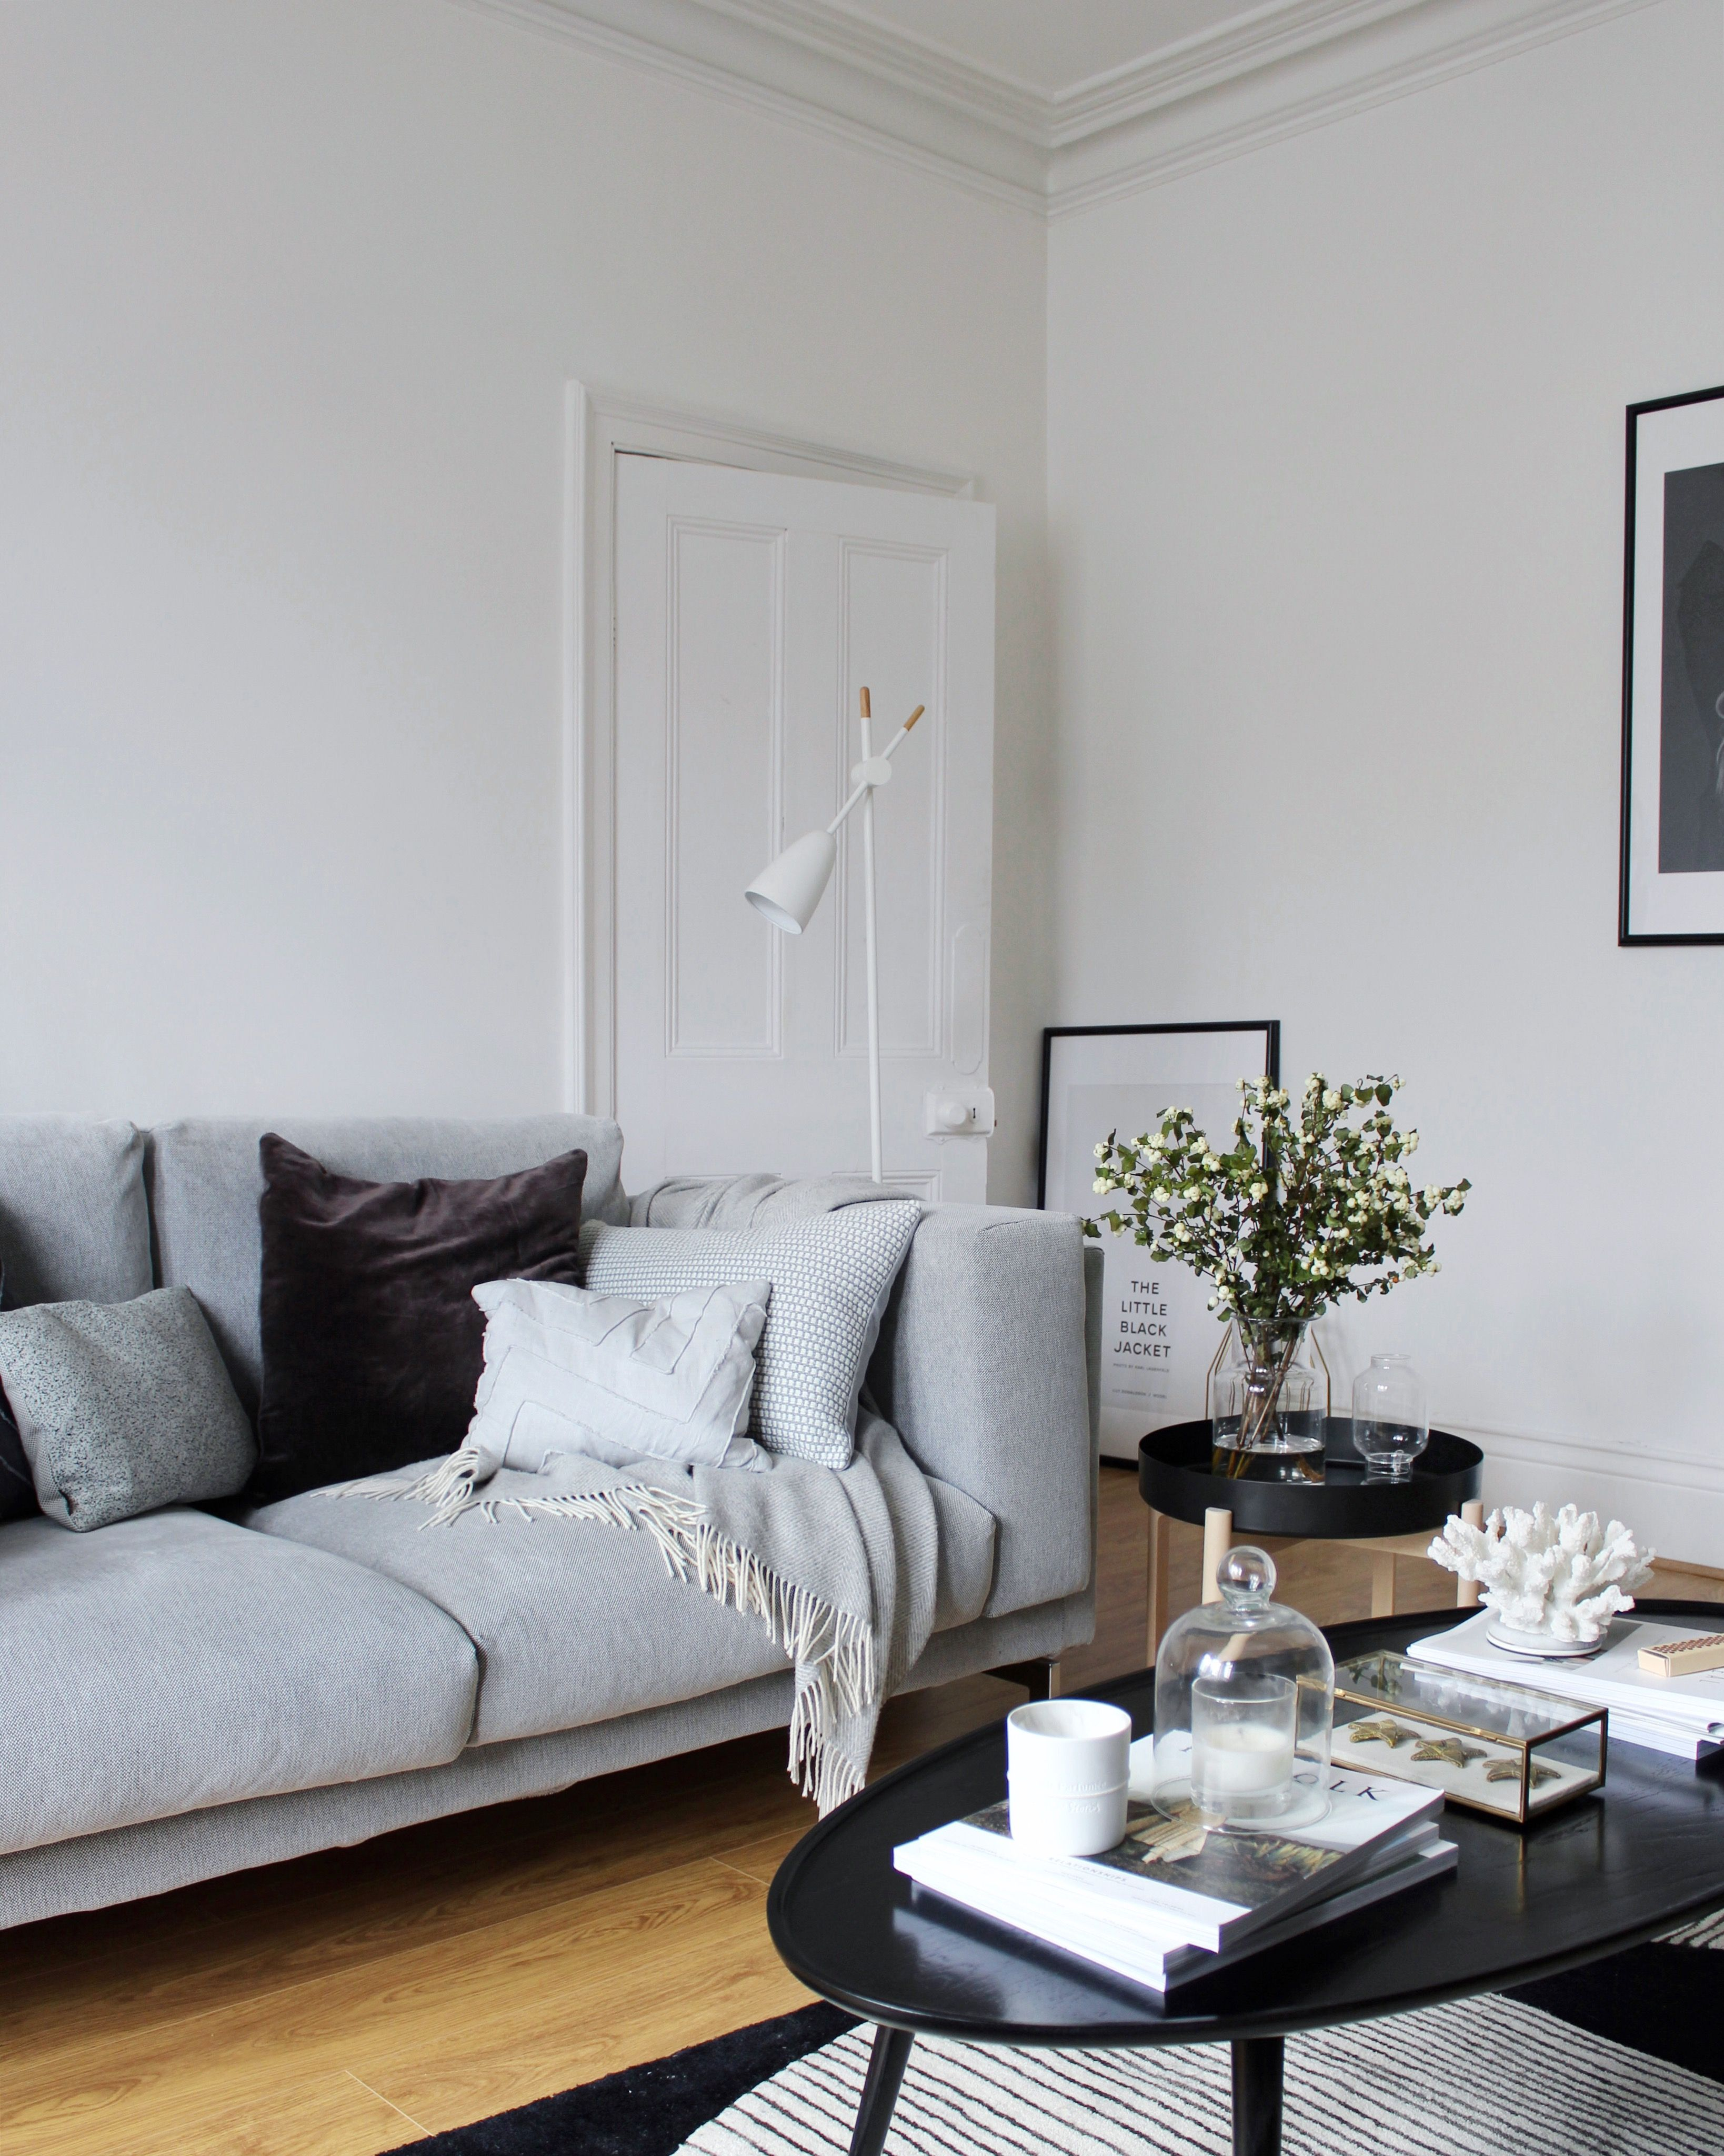 Ikea Nockeby Two Seater Sofa In Black White Talmyra Without Doubt One Of The Best Decisions I Ever Made Home Living Room Living Room Sofa Ikea Living Room